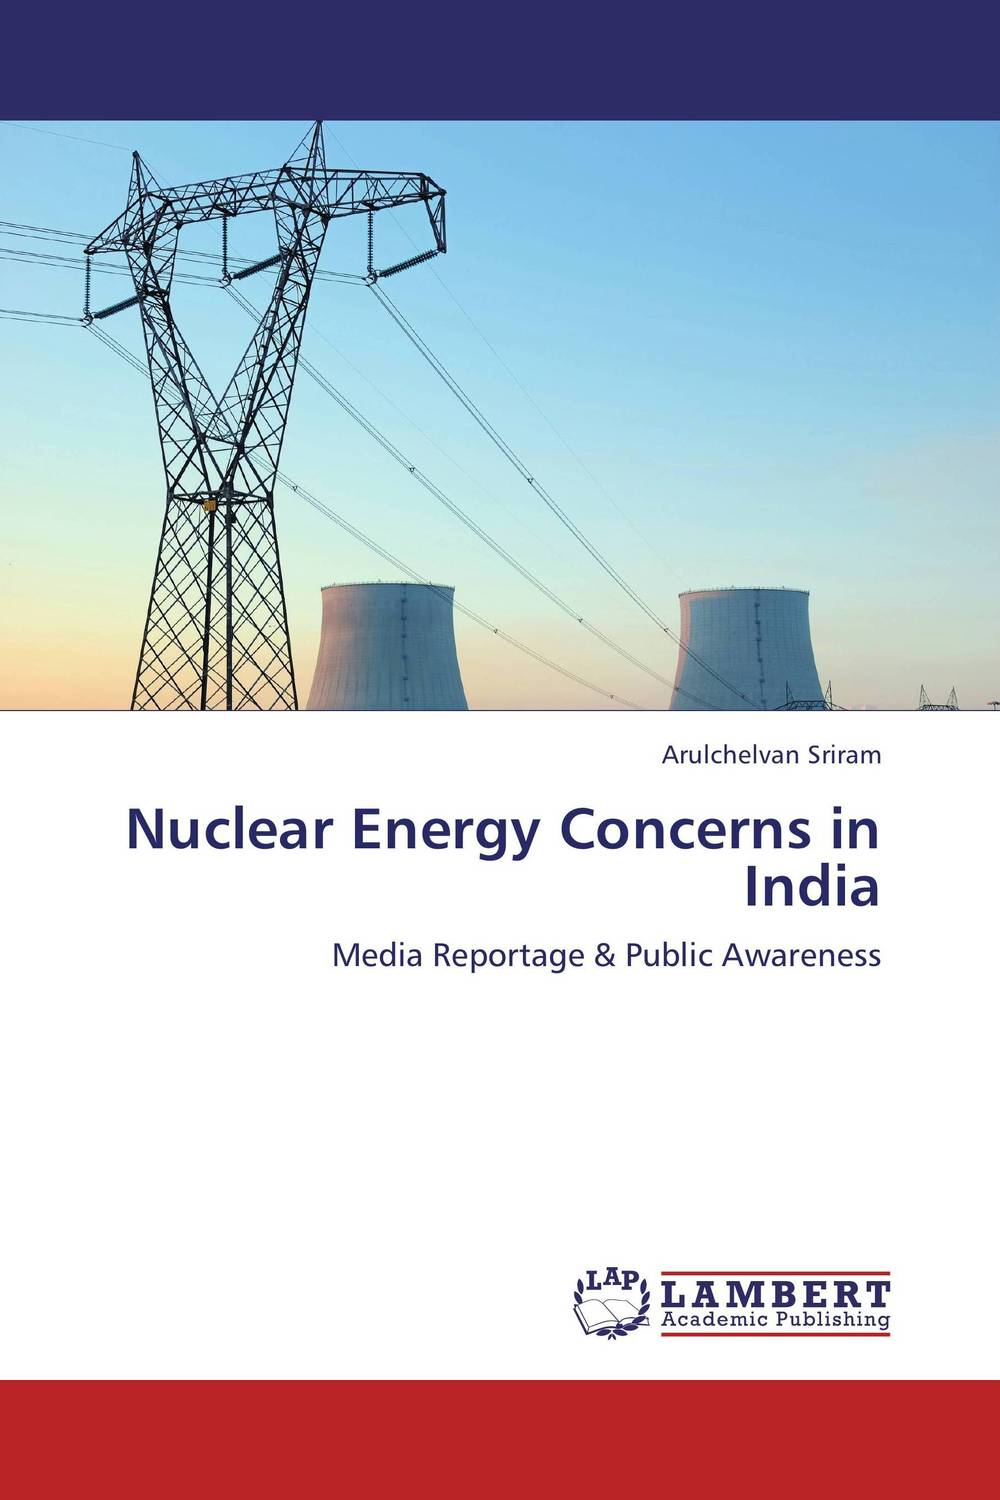 Nuclear Energy Concerns in India doug young the party line how the media dictates public opinion in modern china